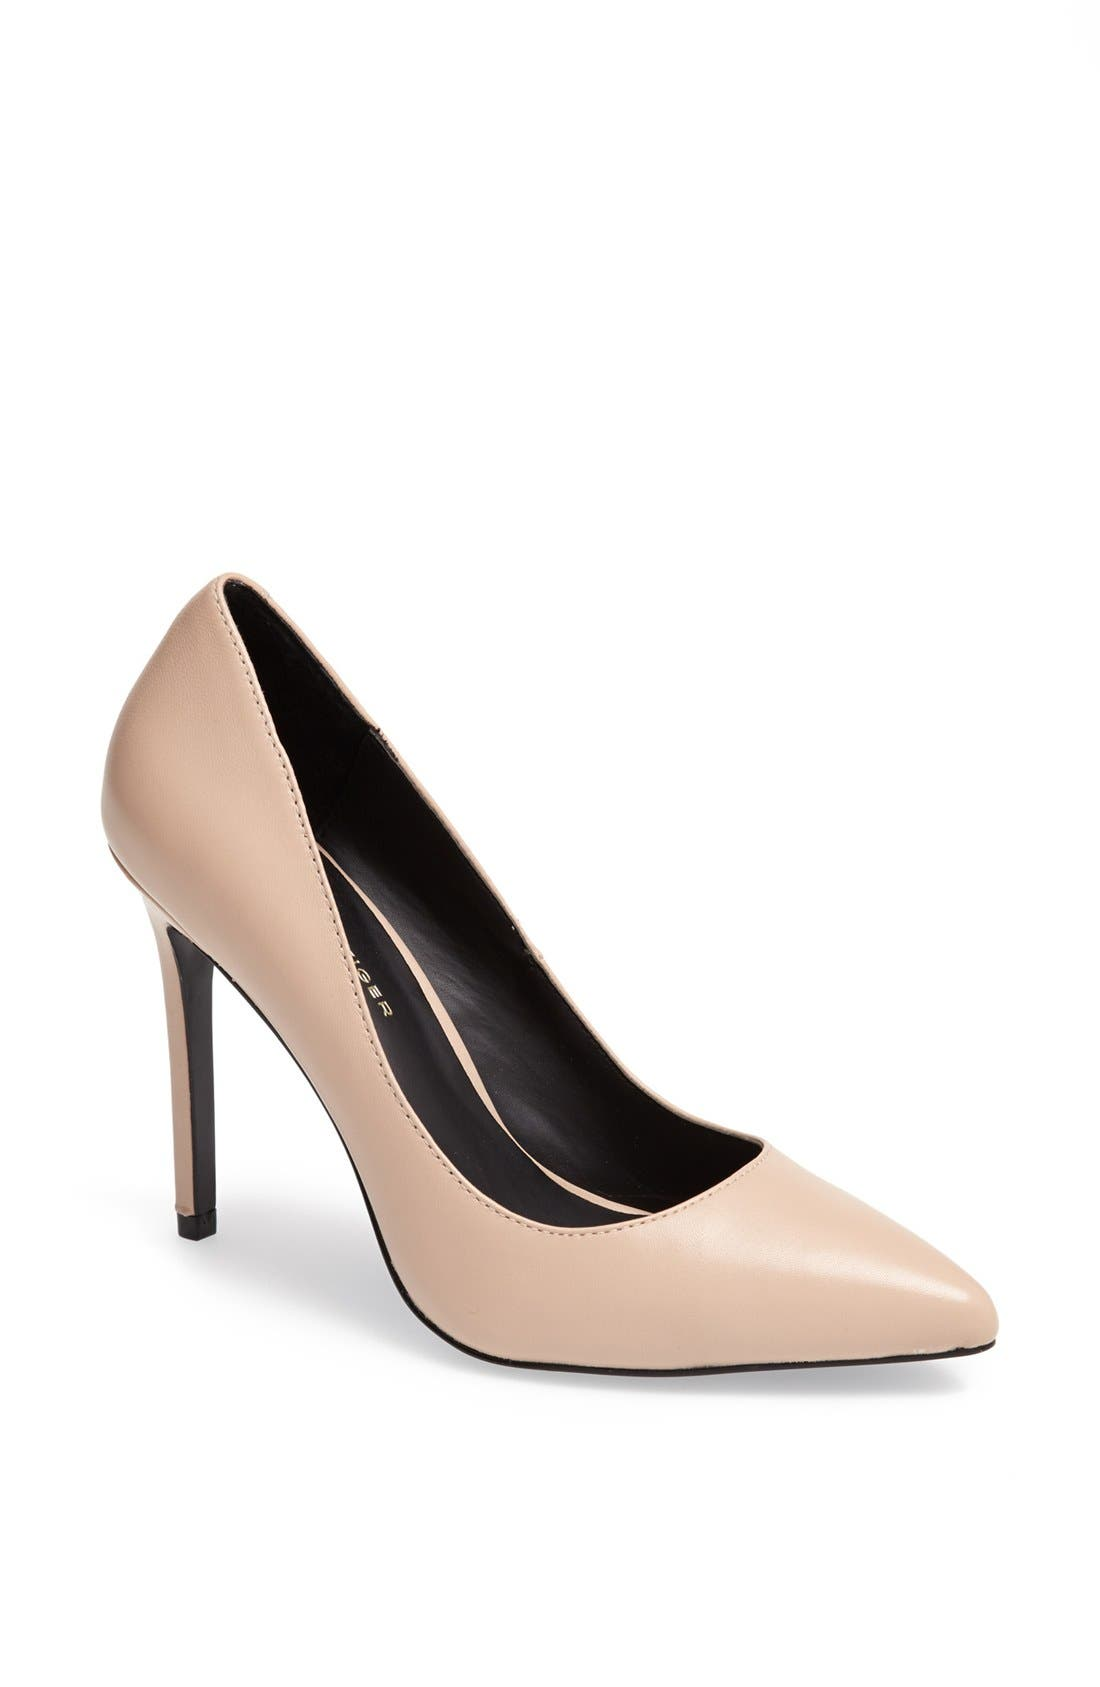 Alternate Image 1 Selected - KG Kurt Geiger 'Bailey' Leather Pump